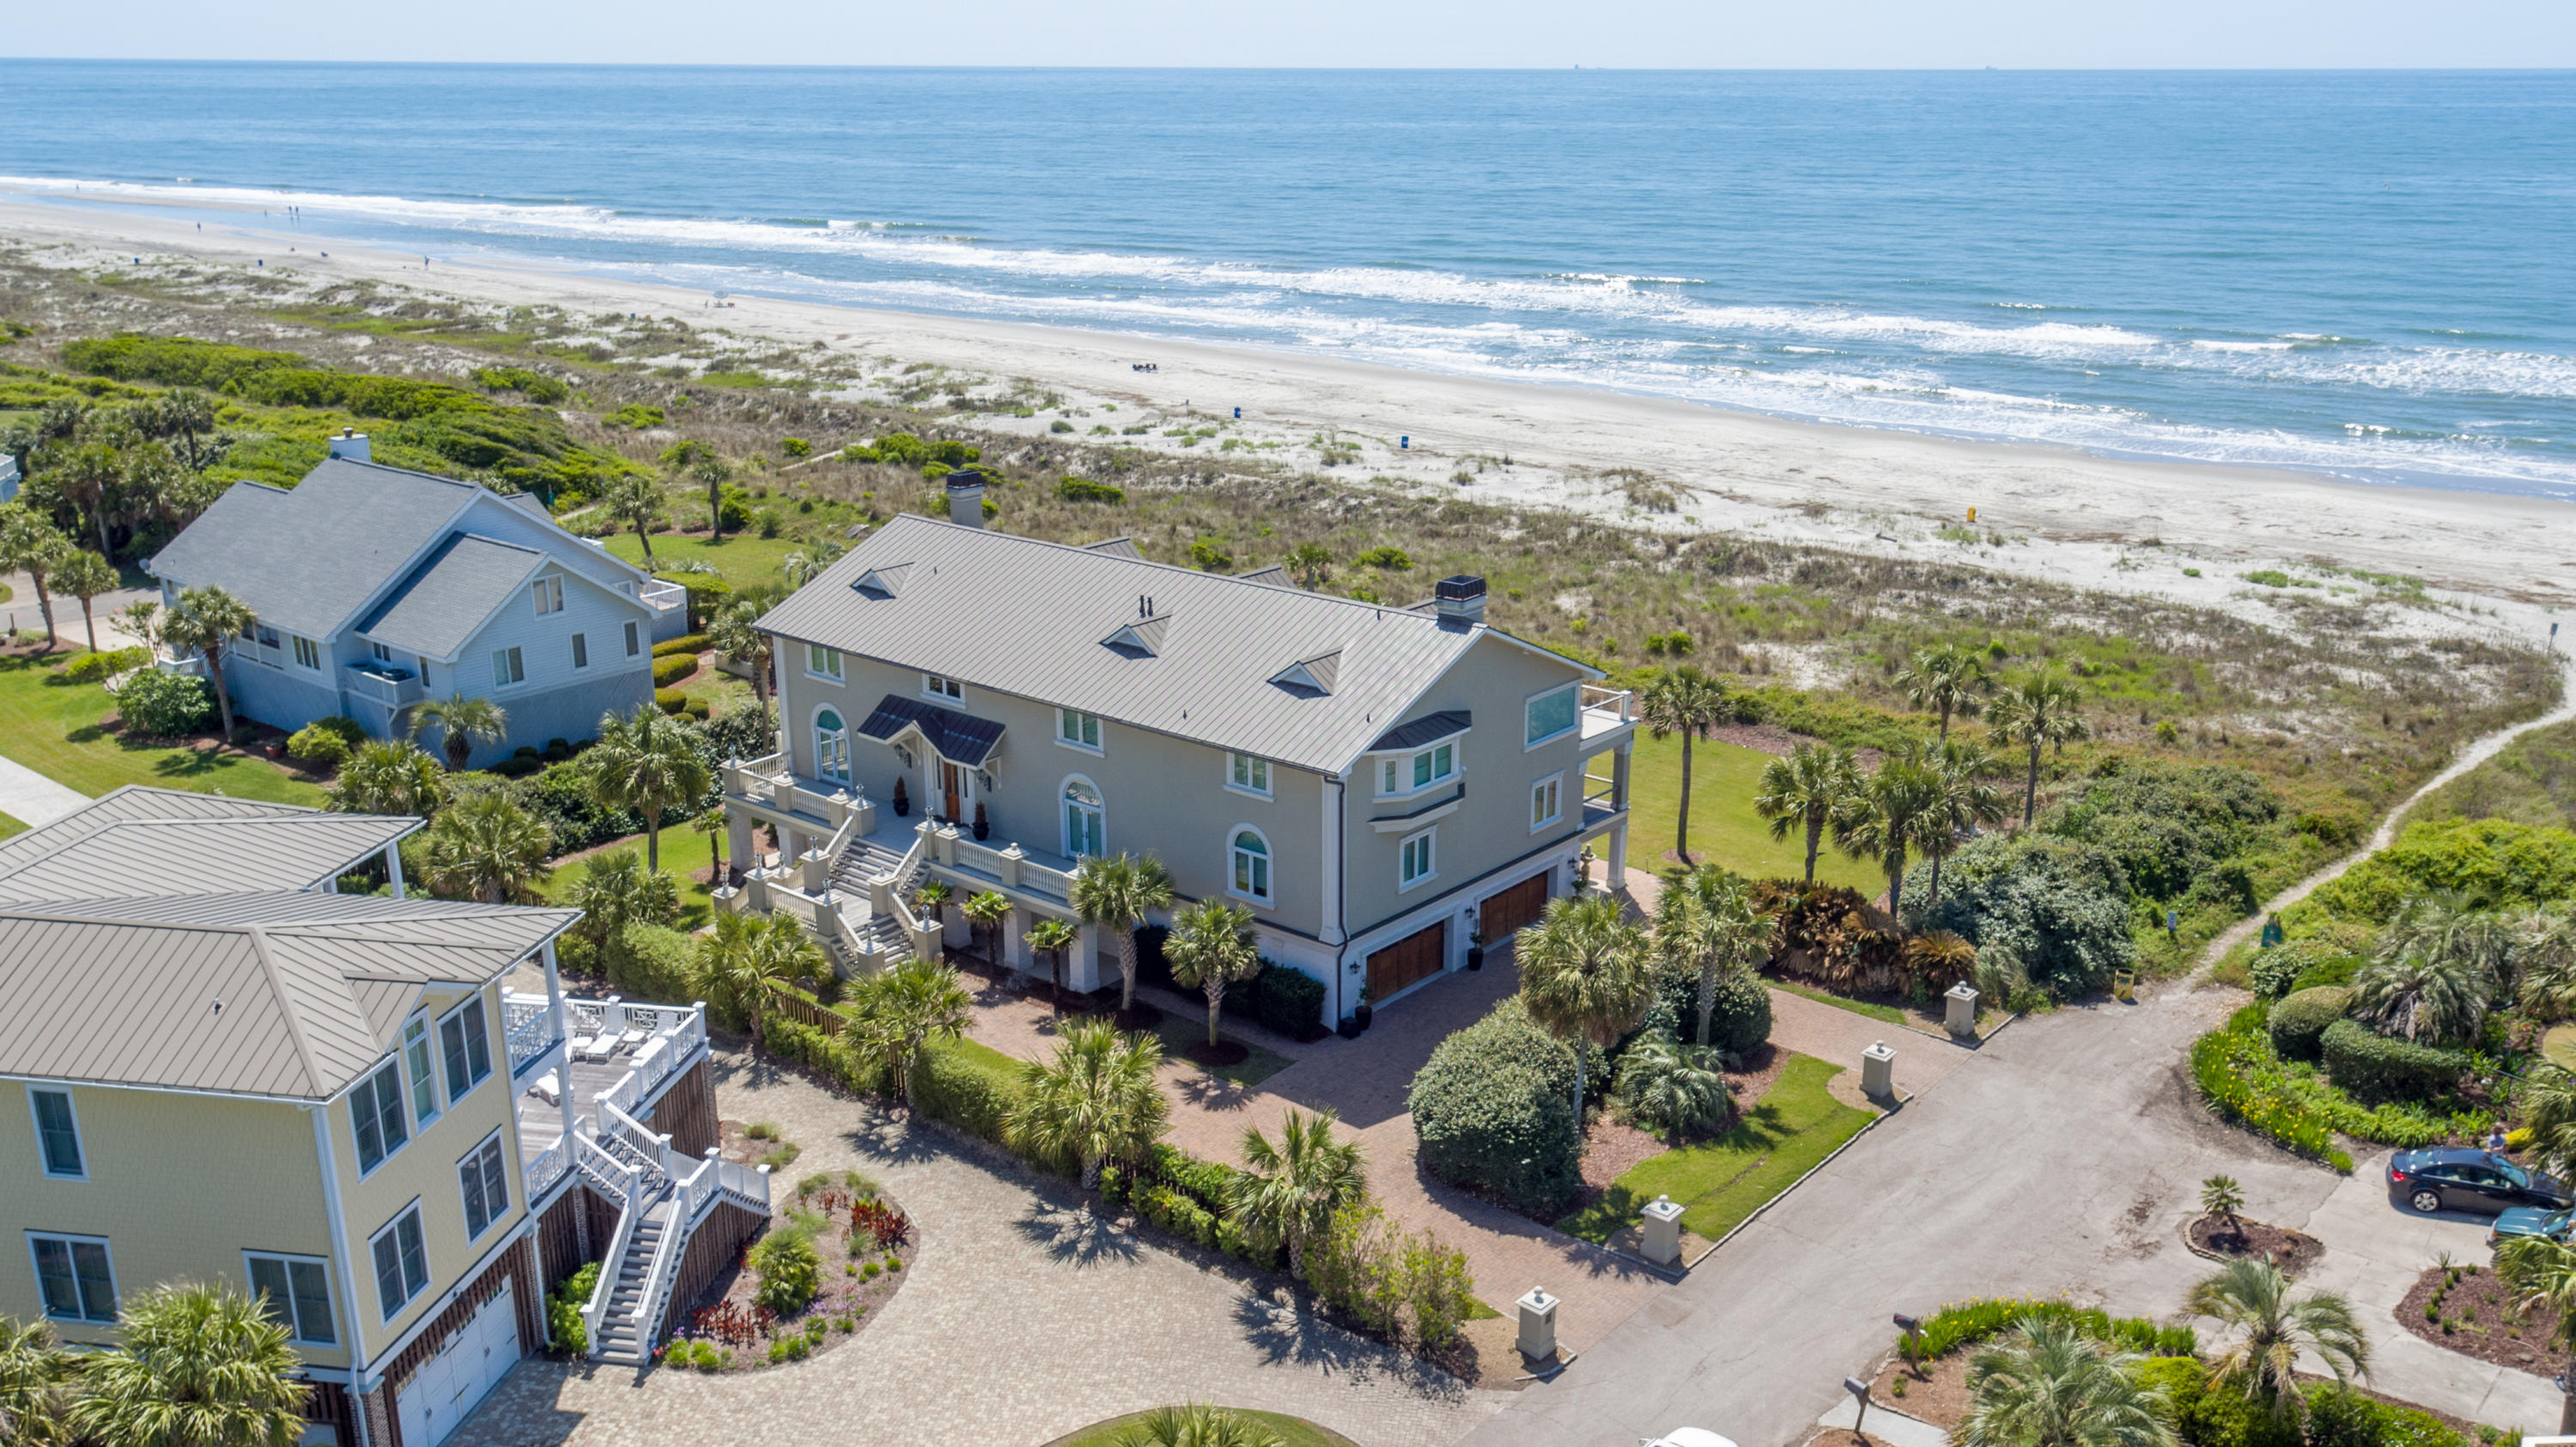 Isle of Palms Homes For Sale - 2 50th, Isle of Palms, SC - 49